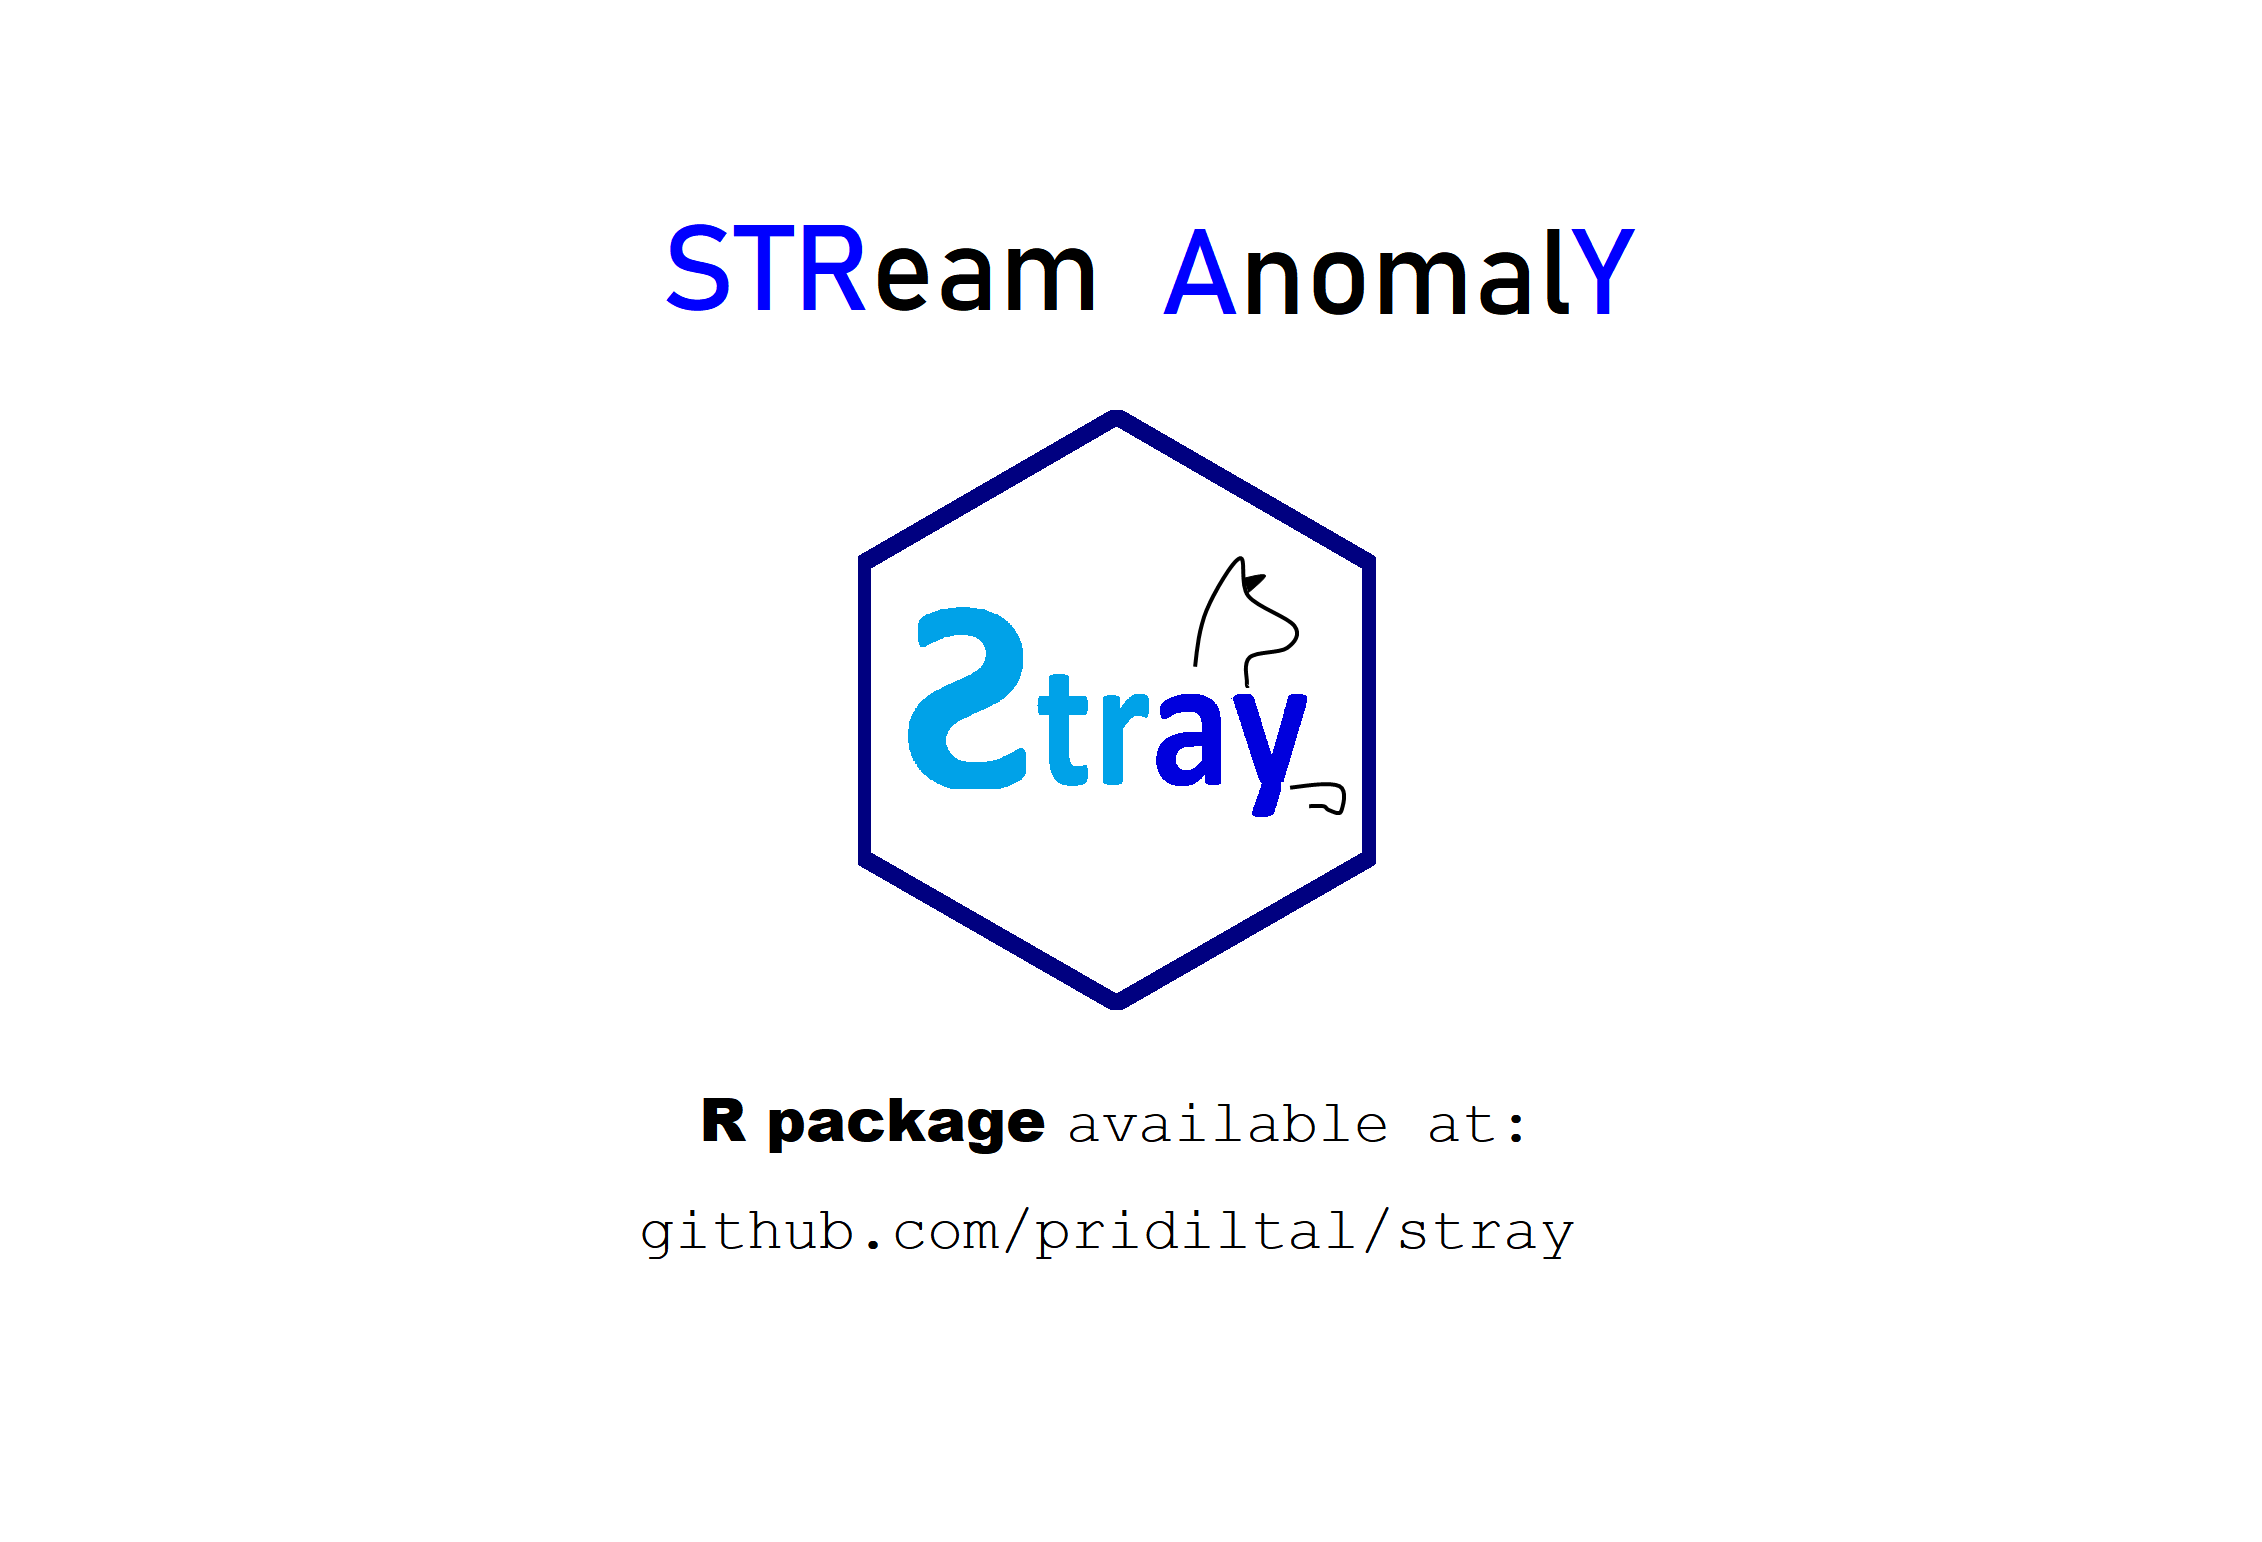 oddstream and stray: Anomaly Detection in Streaming Temporal Data with R